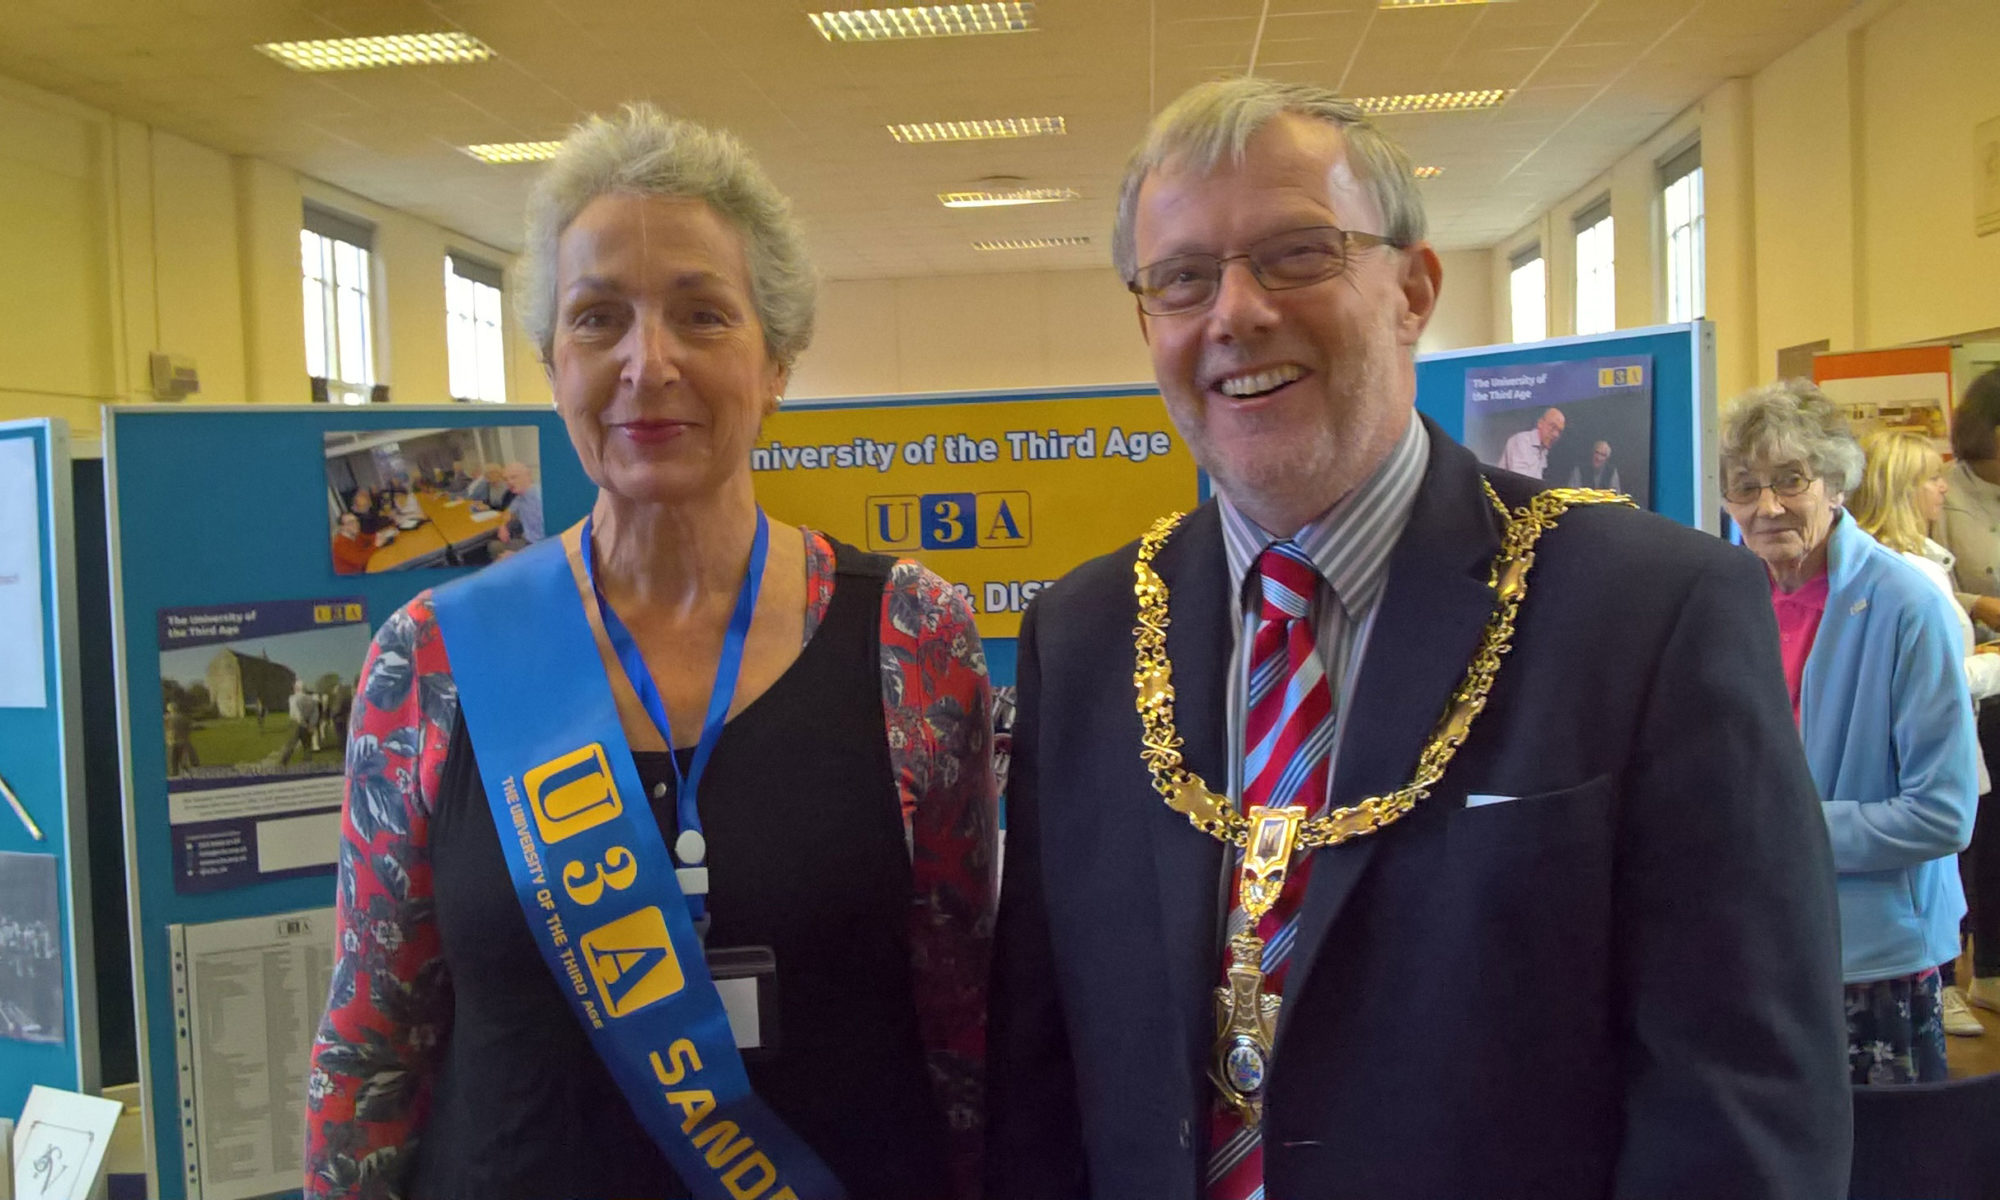 Lesley Farrar with Town Council Mayor Martin Forster